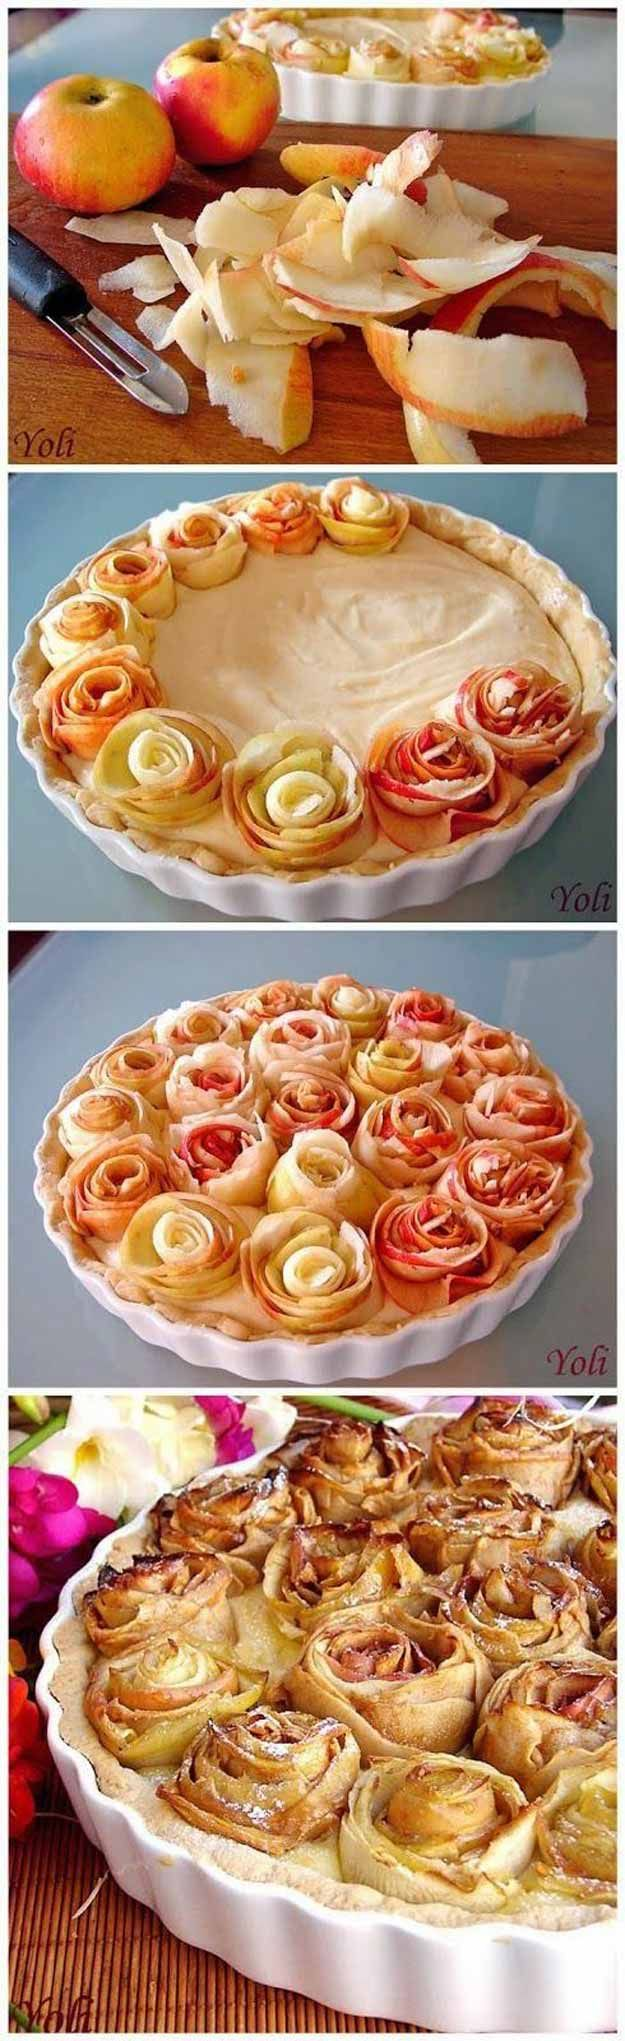 Homemade Apple Pie With Roses   10 Appetizing Apple Pie Recipe Ideas by Pioneer Settler at http://pioneersettler.com/apple-pie-recipe/